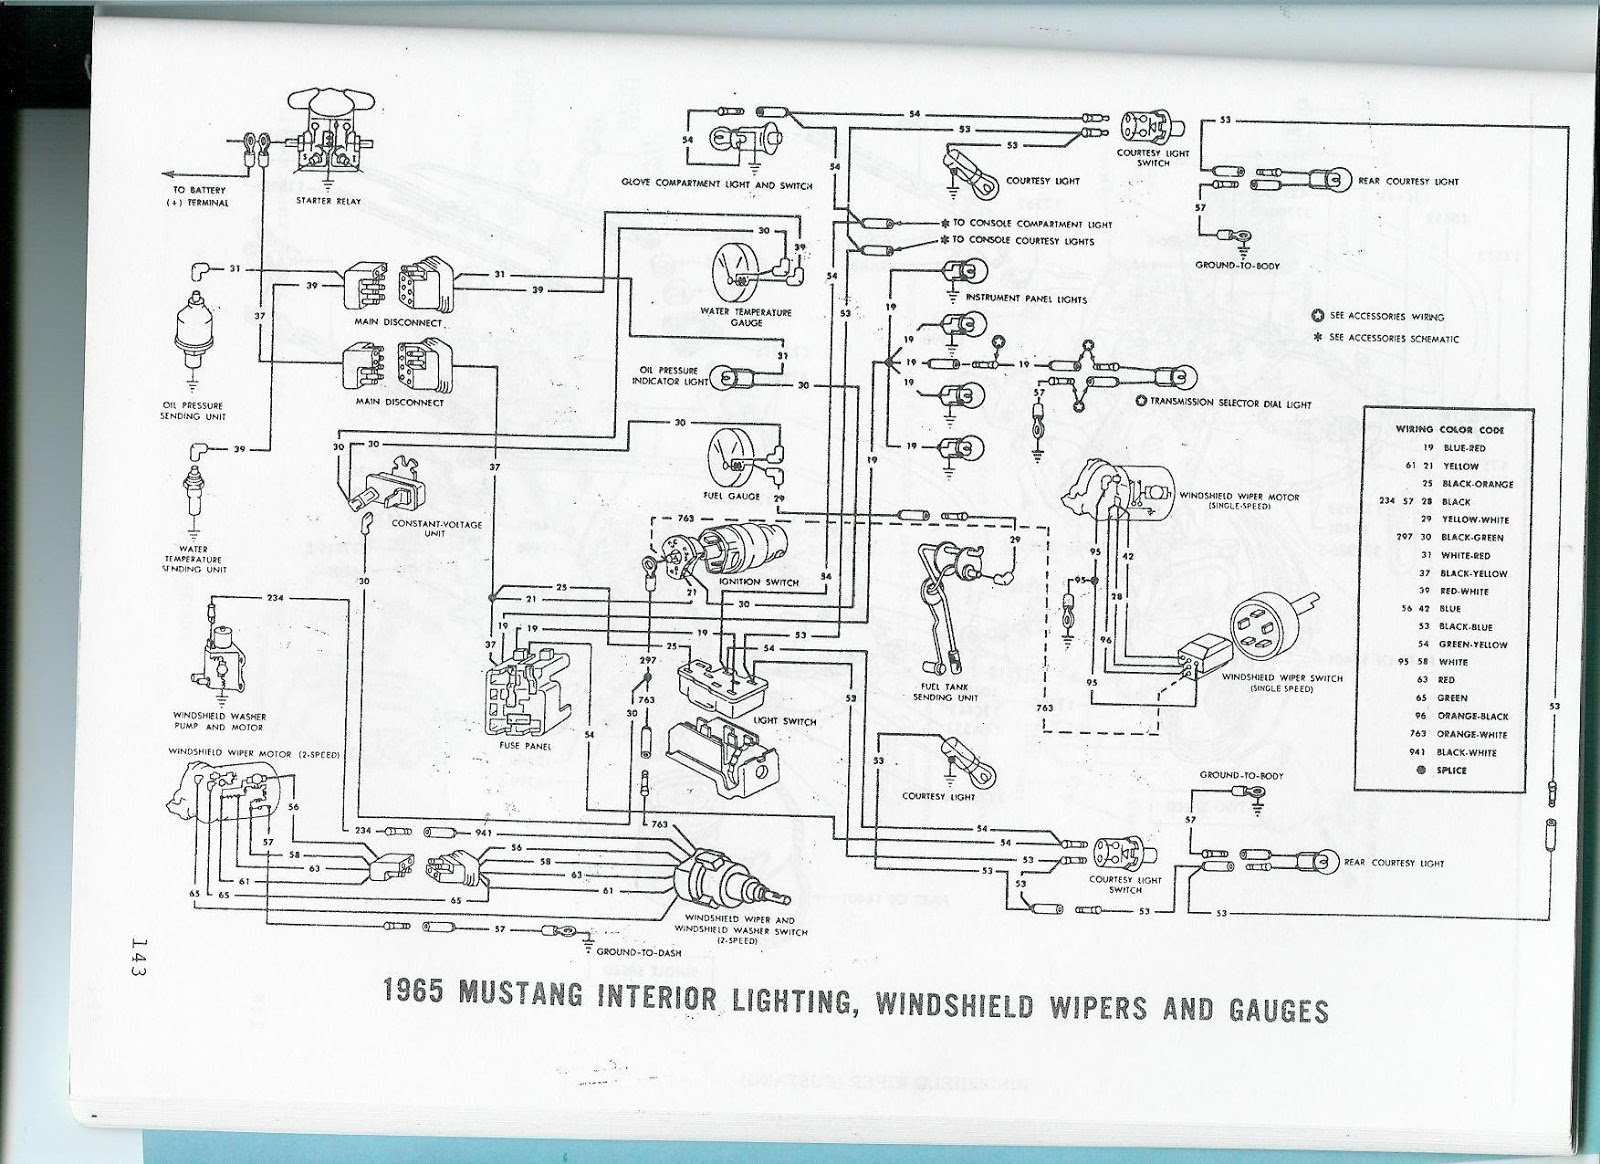 1970 Mustang Headlight Wiring Diagram Opinions About Switch The Care And Feeding Of Ponies 1965 Diagrams 1969 Gto